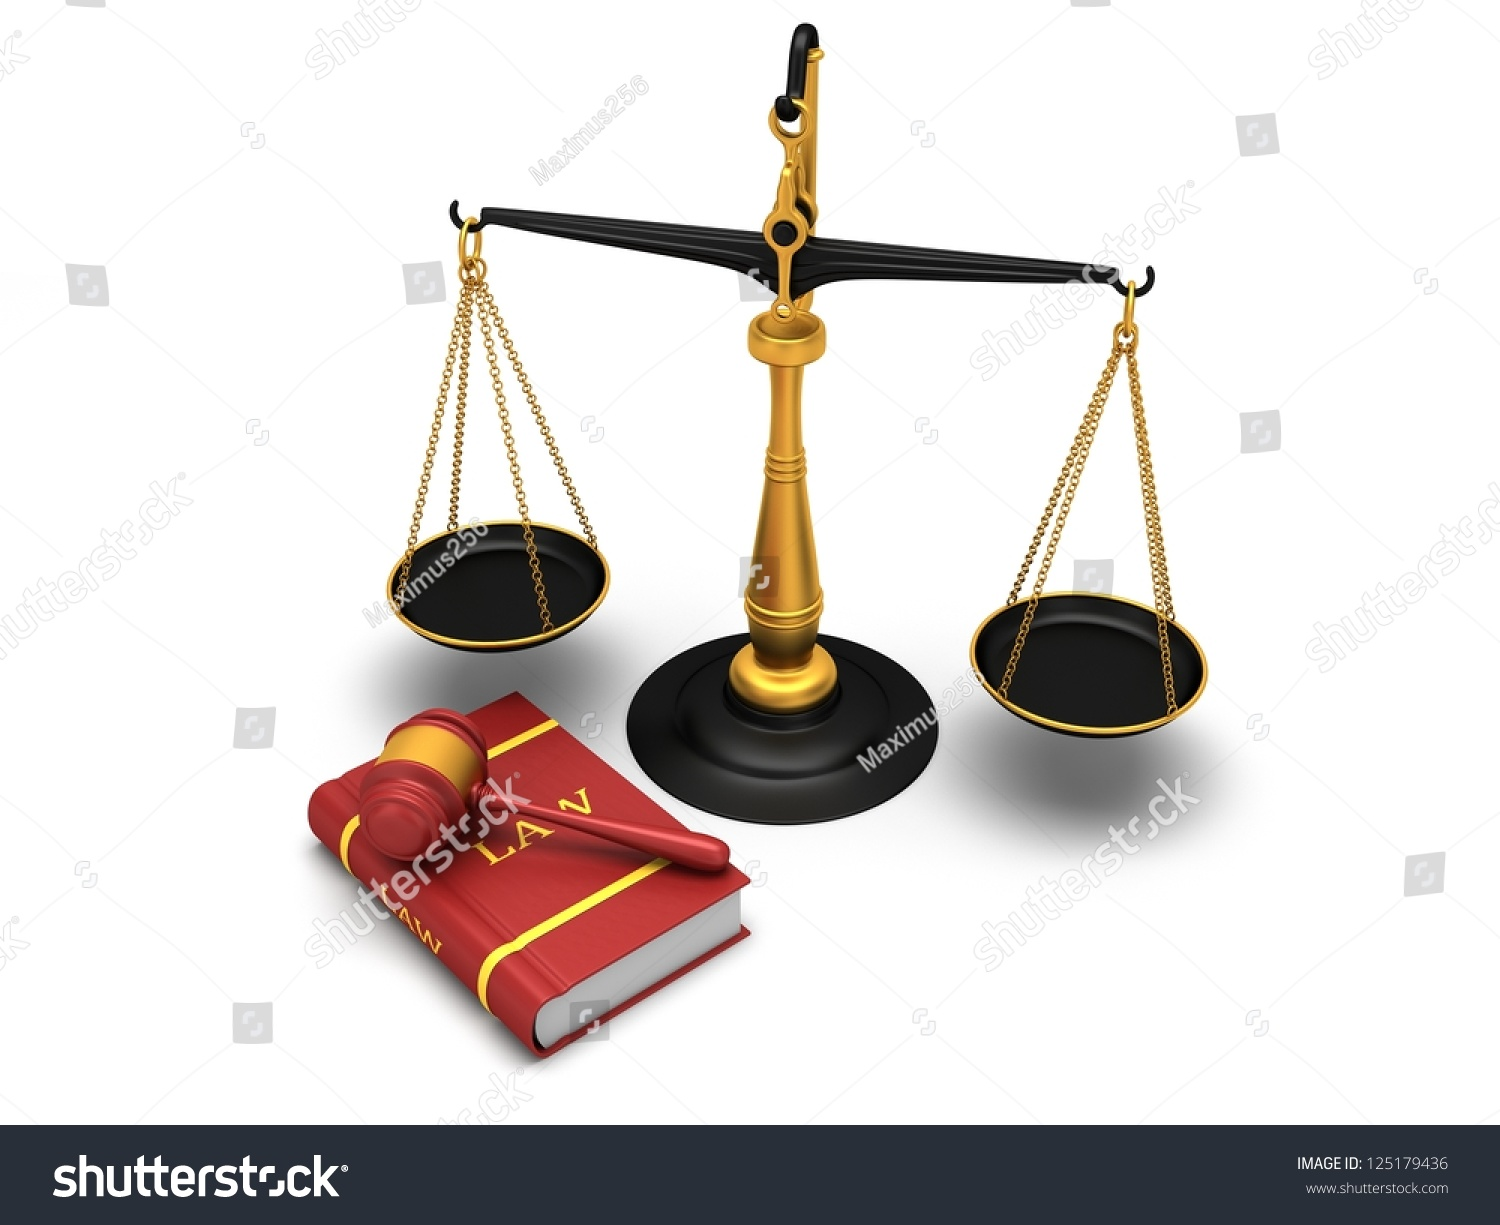 law scale and gavel - photo #19